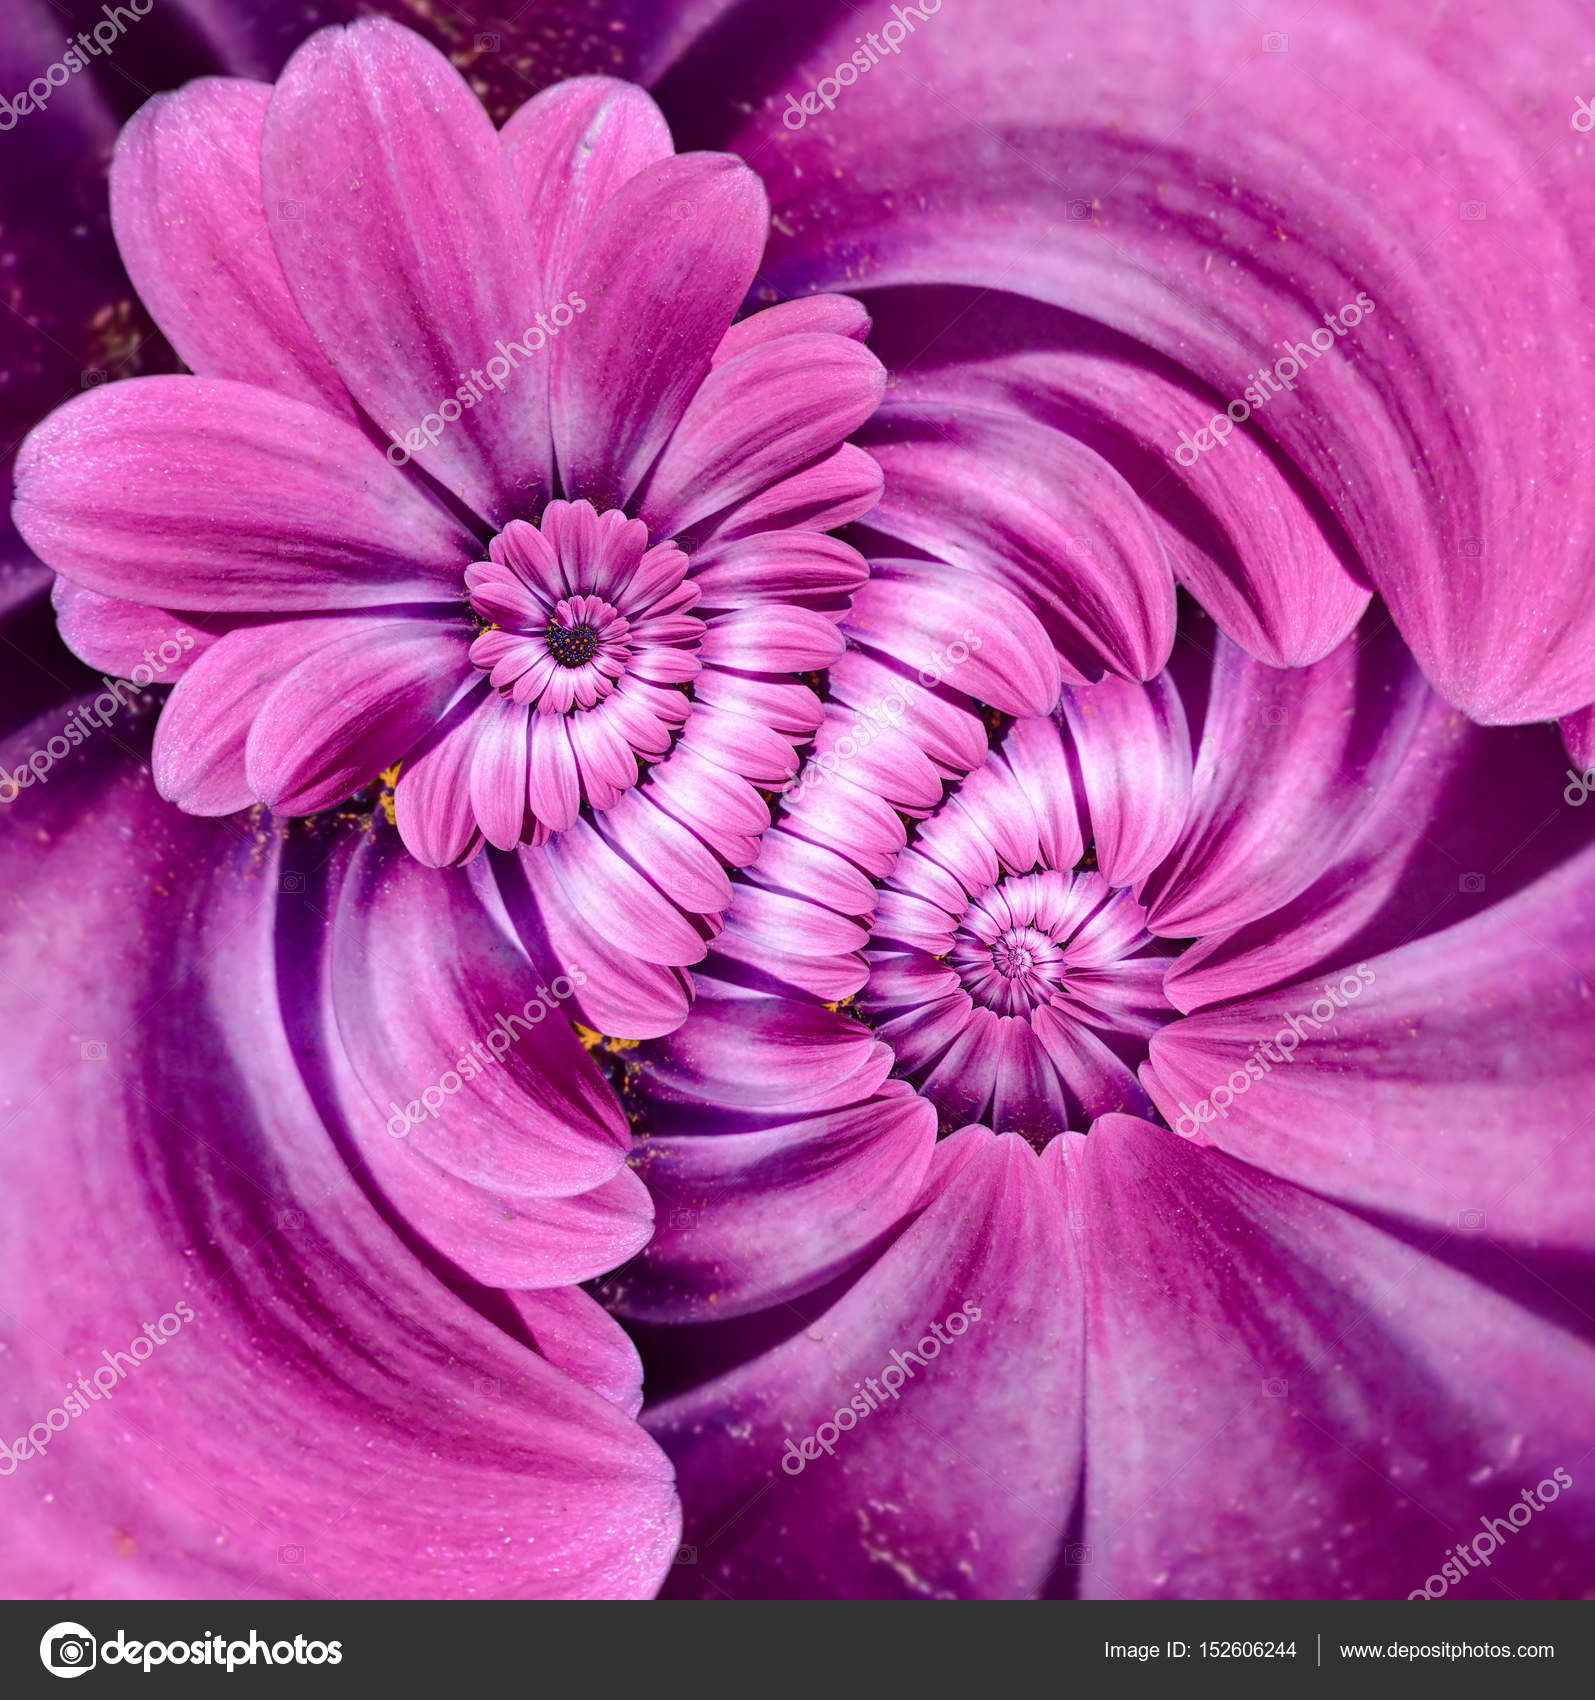 Pink magenta camomile daisy flower double spiral petals abstract pink magenta camomile daisy flower double spiral petals abstract fractal effect pattern background floral spiral izmirmasajfo